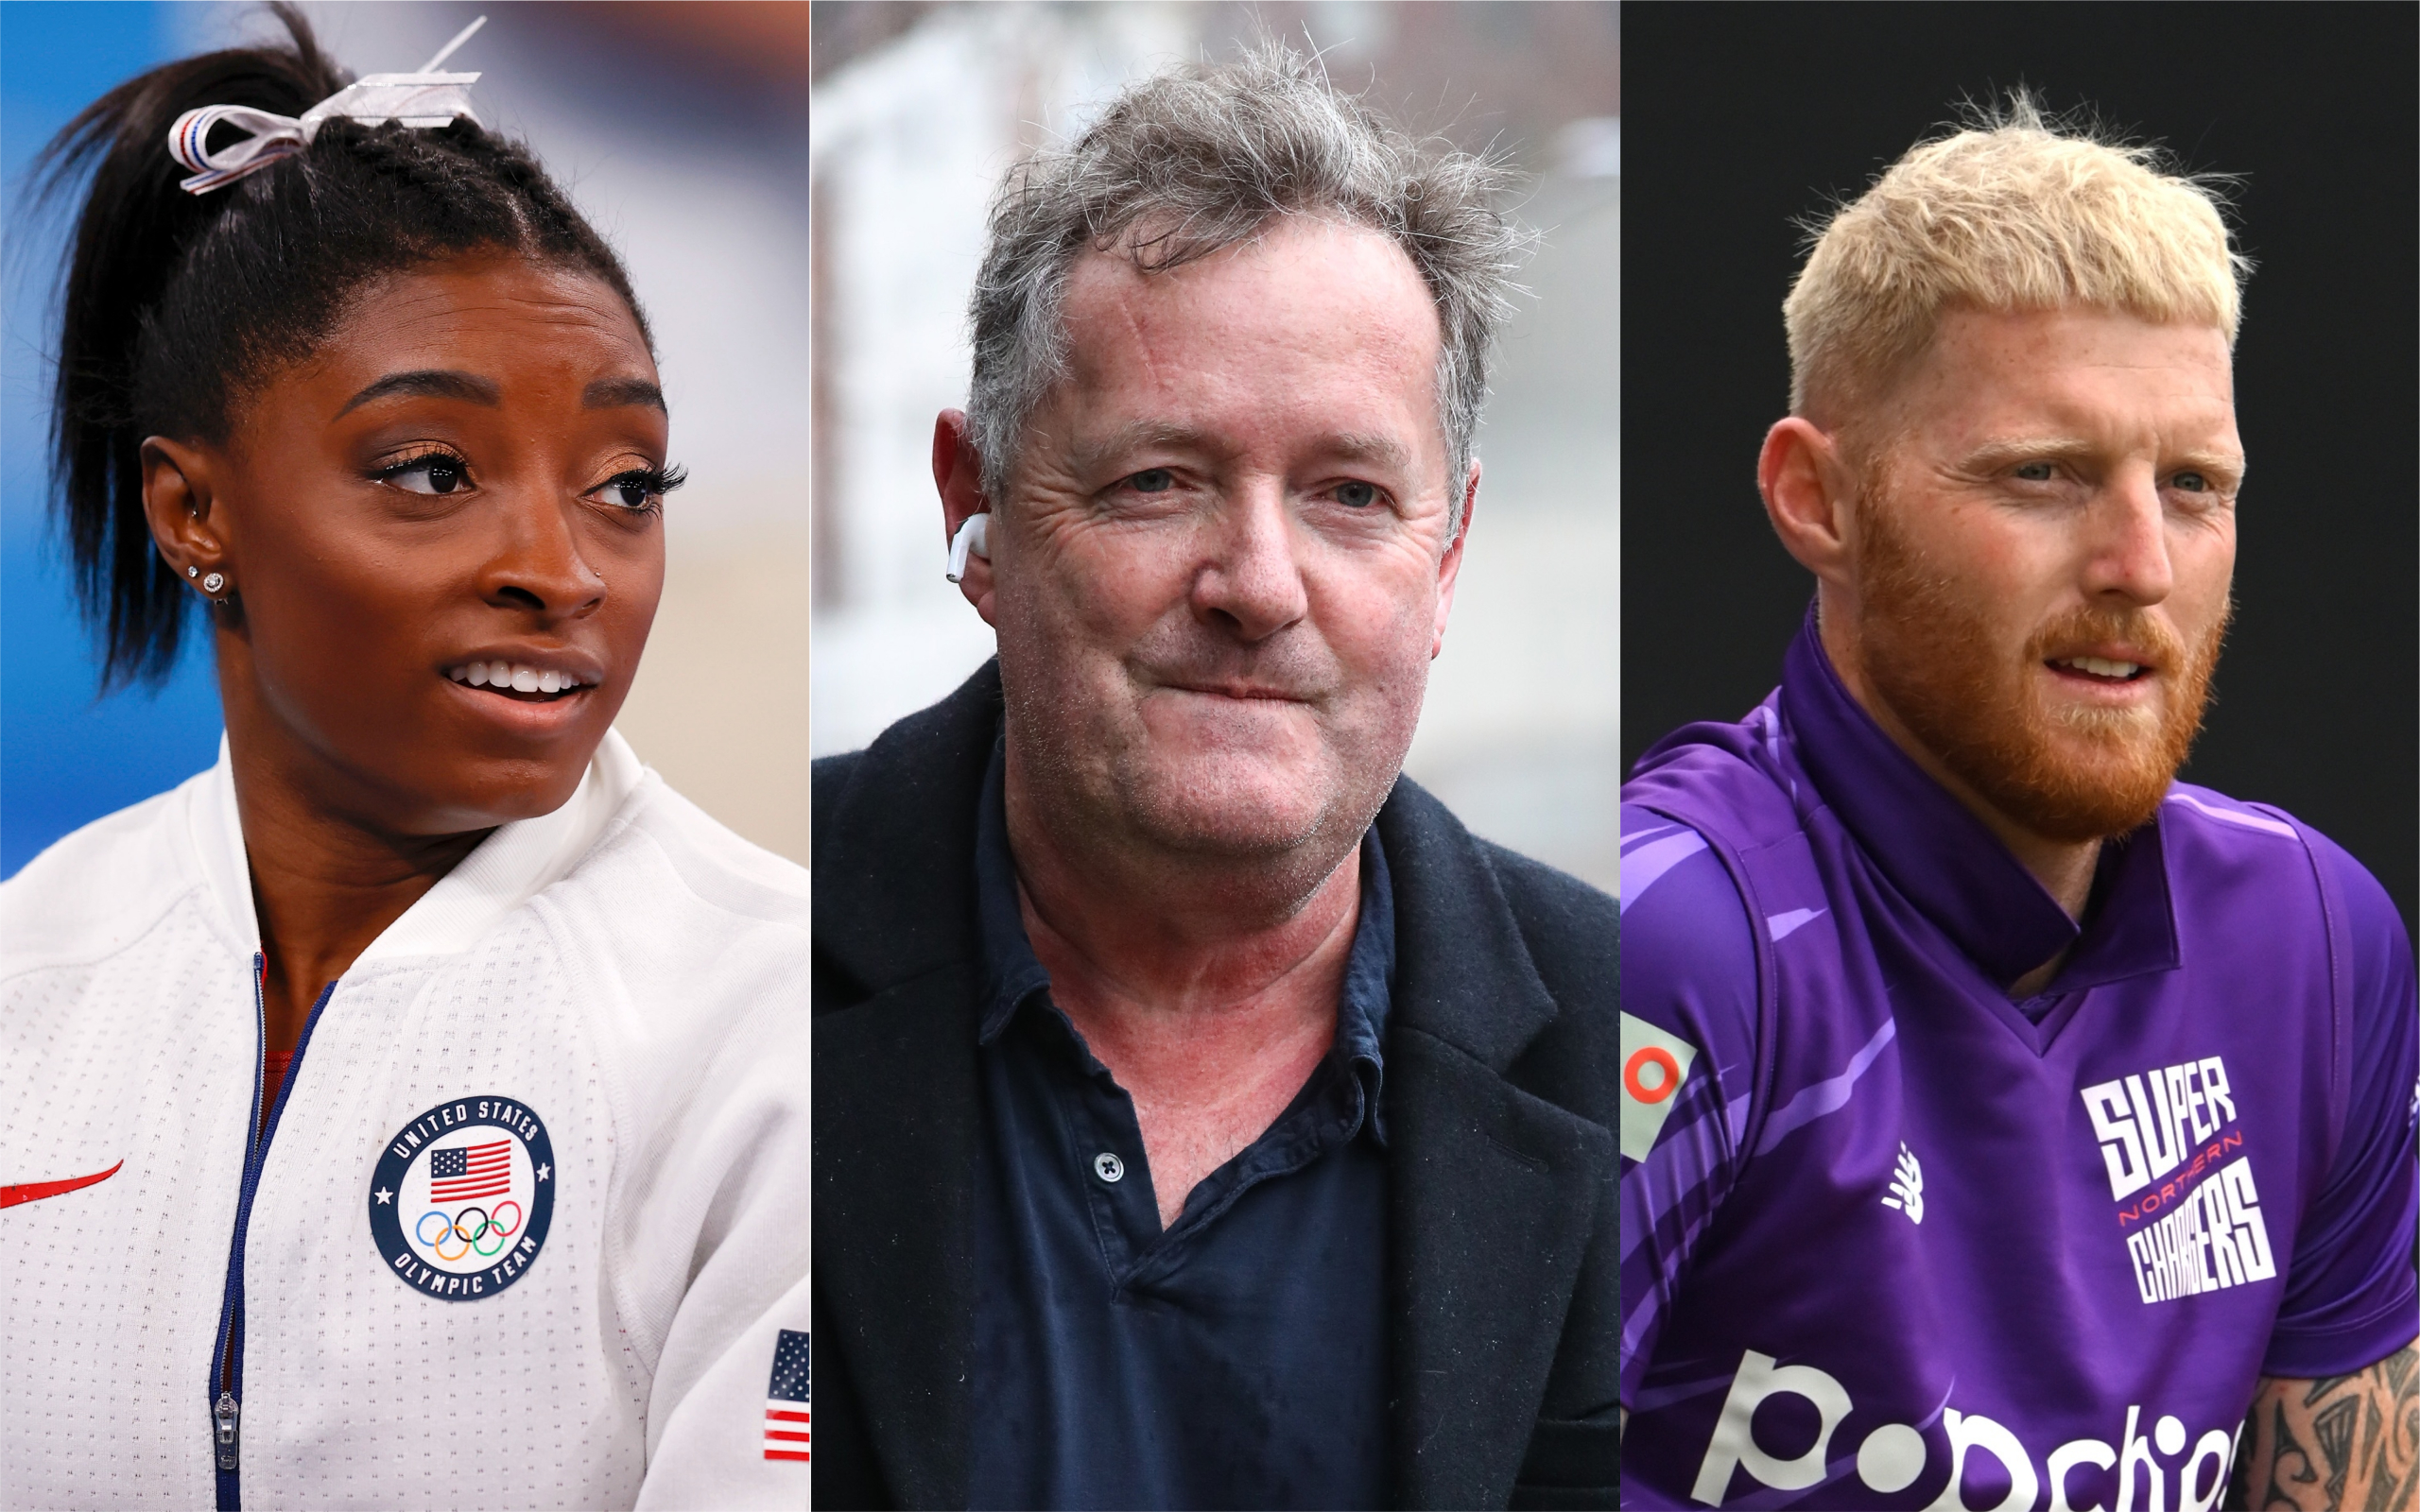 Piers Morgan Rejects Criticism Over Contrasting Reactions to Stokes, Biles